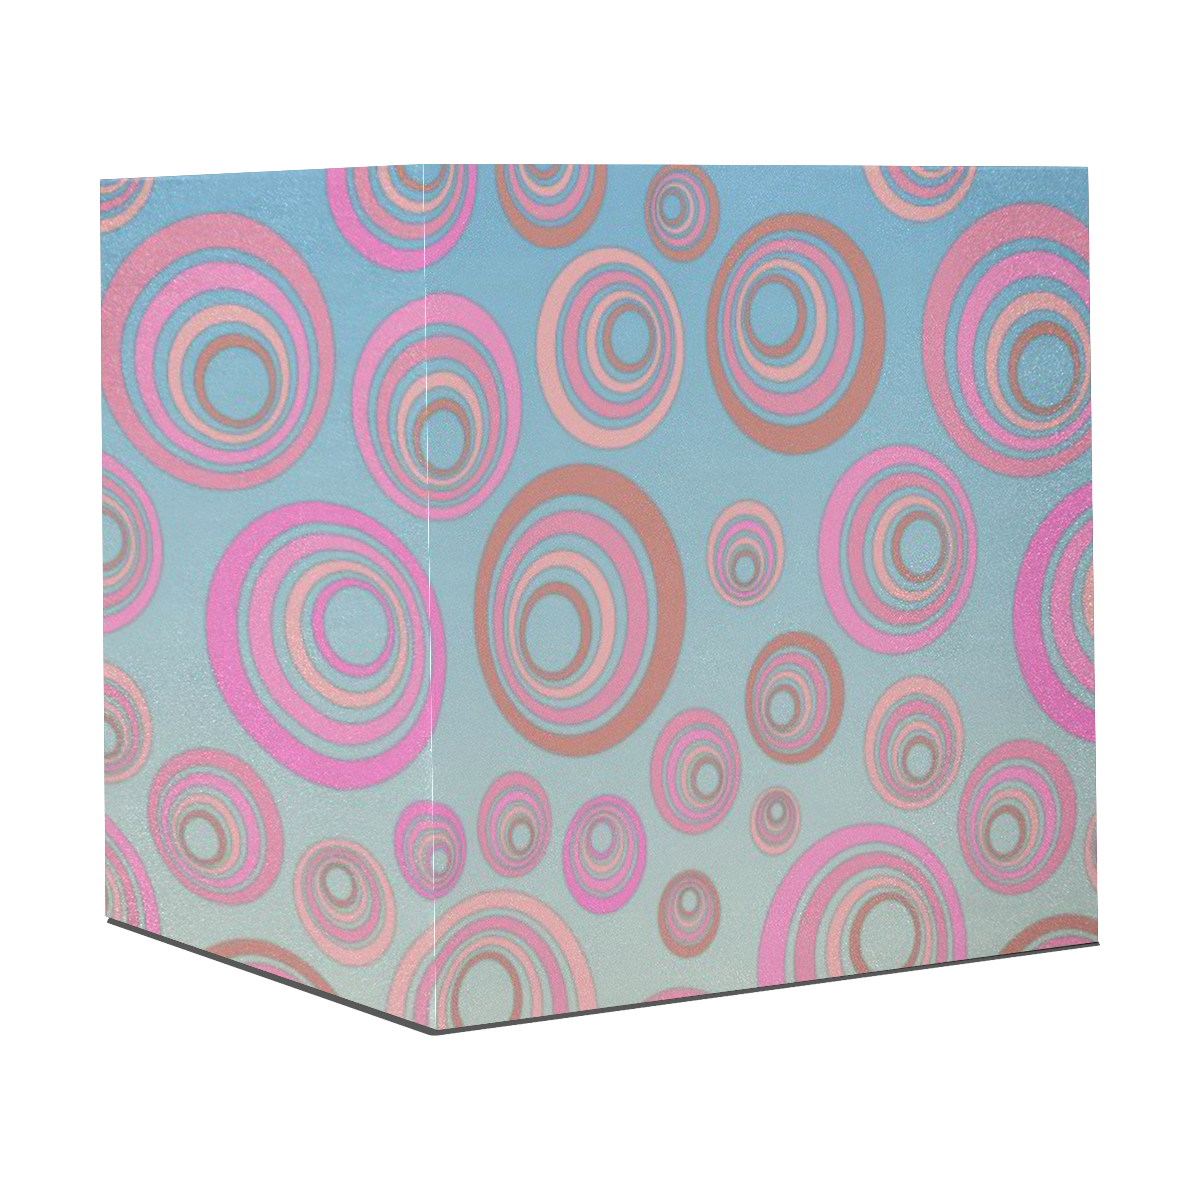 "Retro Psychedelic Pink on Blue Gift Wrapping Paper 58""x 23"" (1 Roll)"